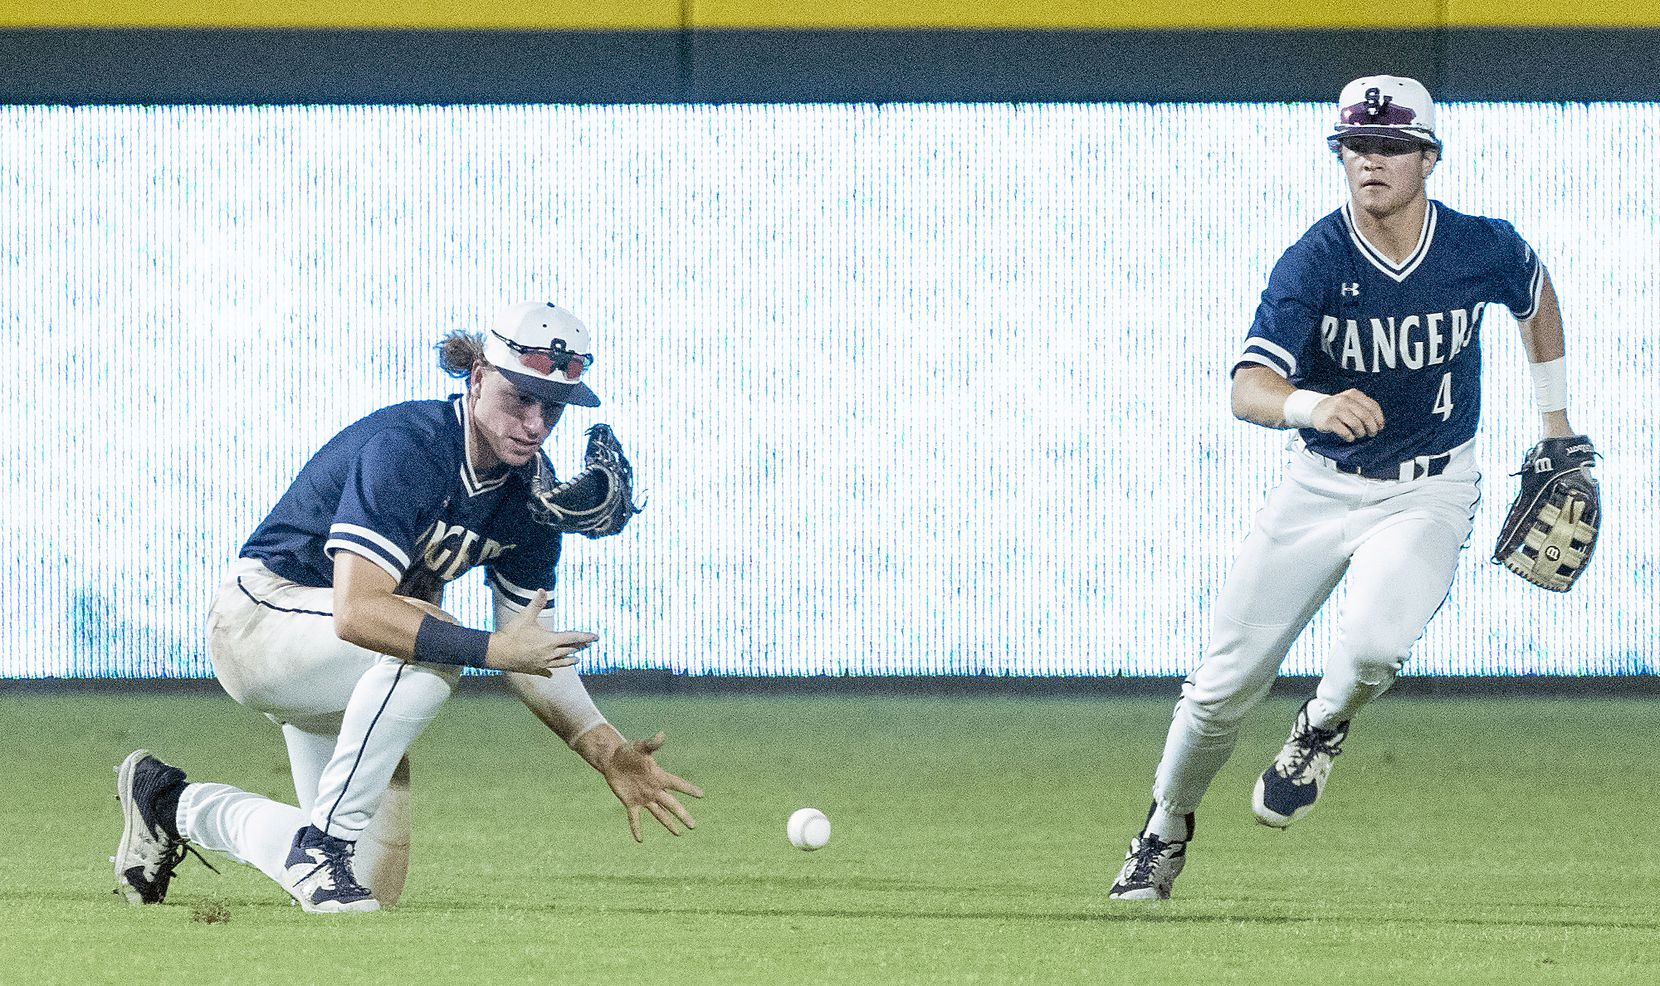 A hit by Rockwell-Heath Alex Stowers, (2), falls next to Comal Smithson Valley Kevin Bazzell, (9), as Jett Williams, (4), races into help on the play during the third inning of the 2021 UIL 6A state baseball semifinals held, Friday, June 11, 2021, in Round Rock, Texas.    (Rodolfo Gonzalez/Special Contributor)